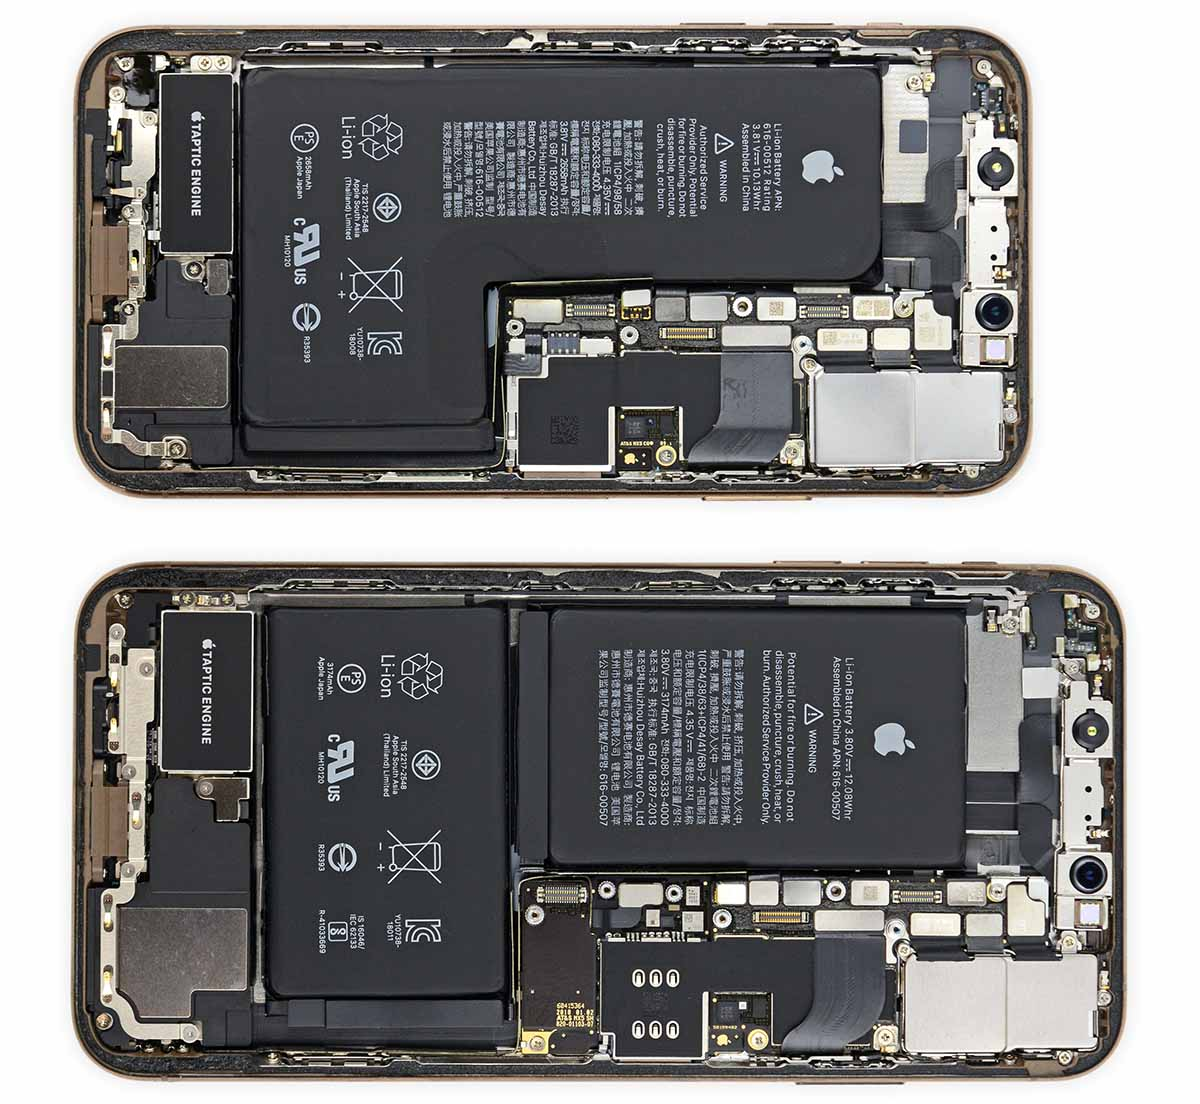 Apple Has Agreed to Pay $500 Million to Settle the iPhone Battery Throttling Lawsuit in the U.S.